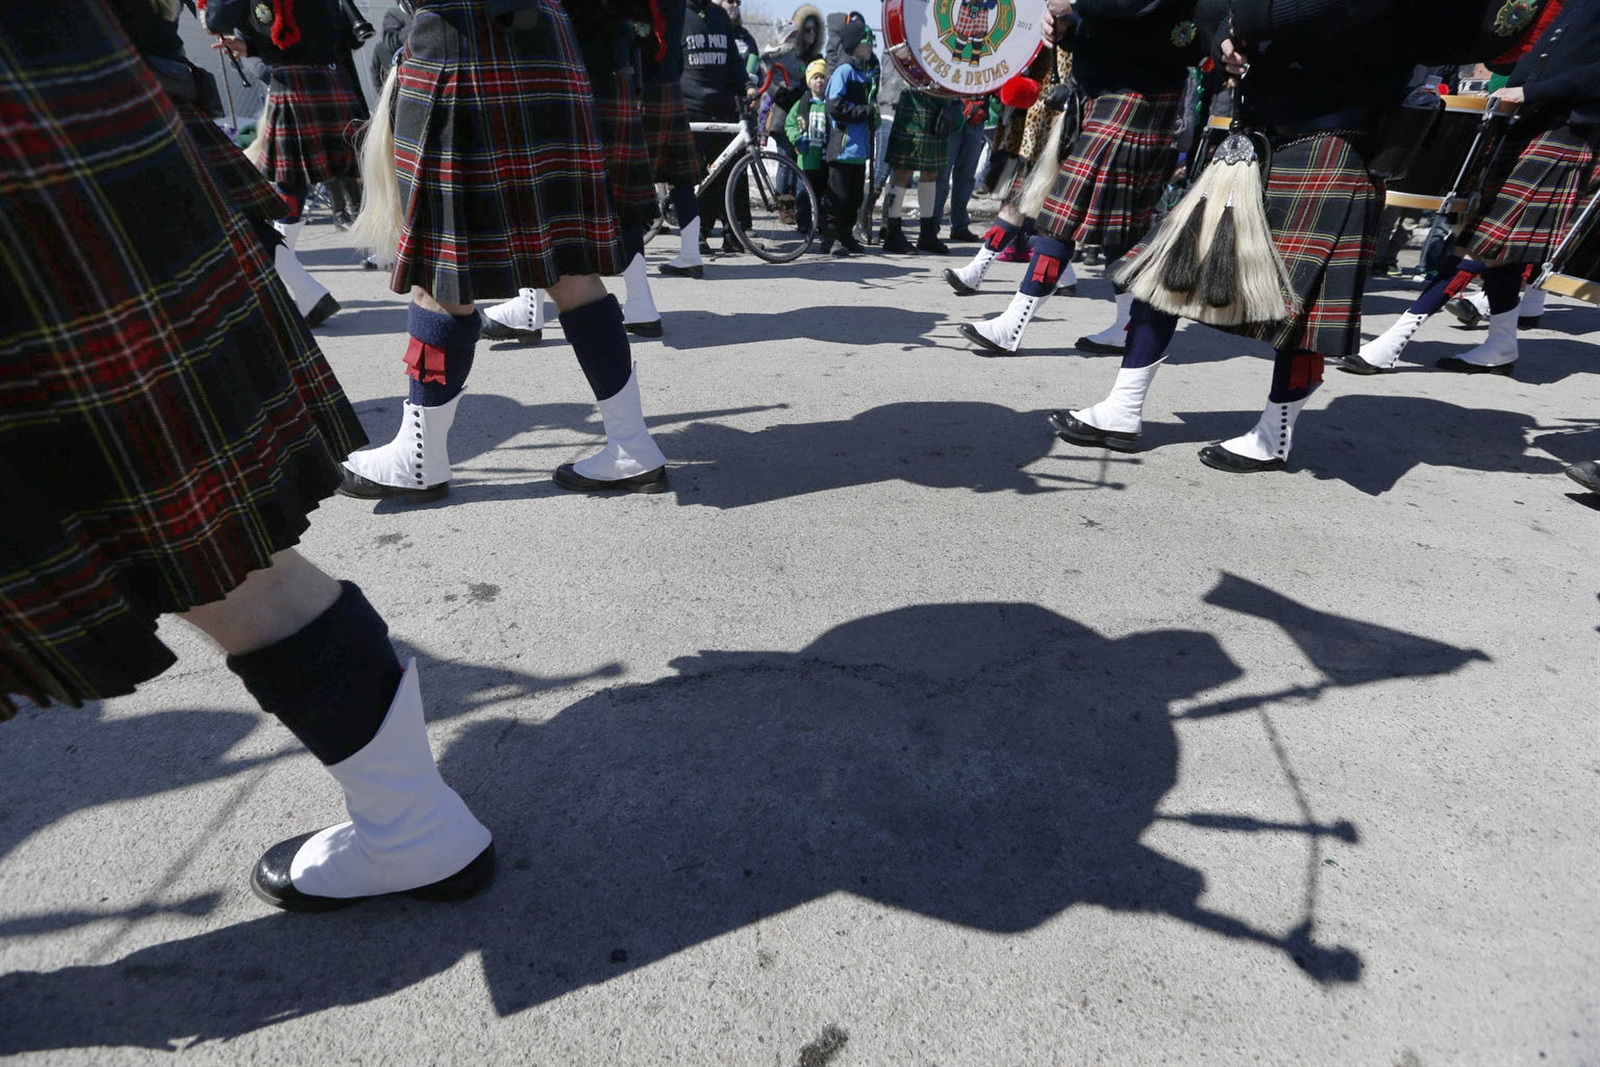 Day 74: March 18, 2018 - The Greater Buffalo Firefighters Pipes & Drums march in the 25th annual Old Neighborhood St. Patrick's Day Parade in the Old First Ward on Saturday, March 17, 2018.